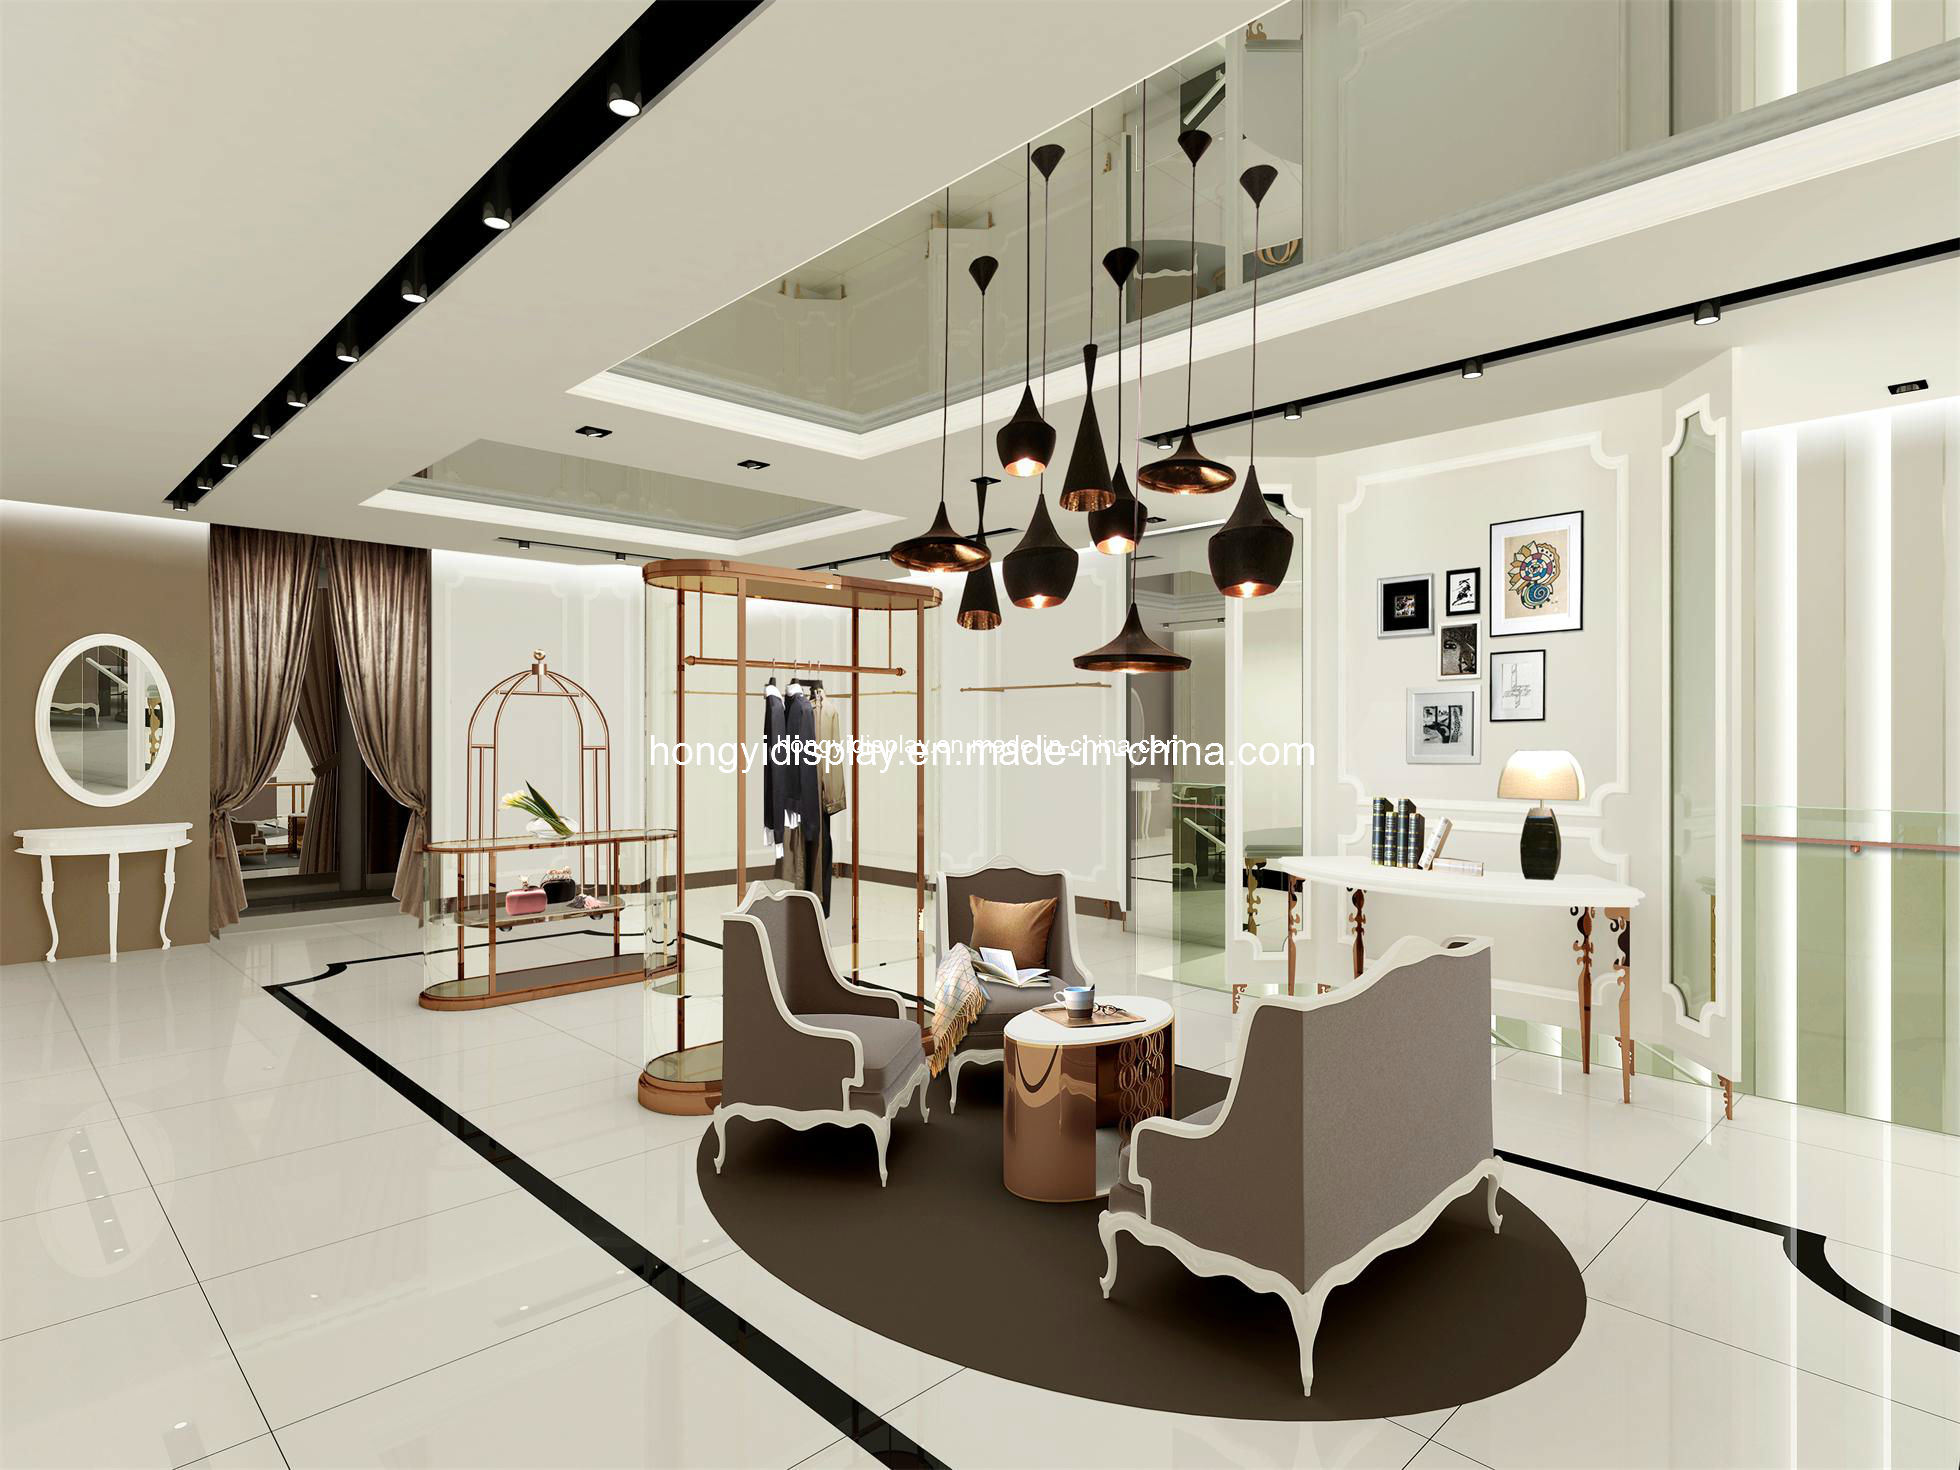 china high end garments showroom display lady clothing shop interior design store display. Black Bedroom Furniture Sets. Home Design Ideas